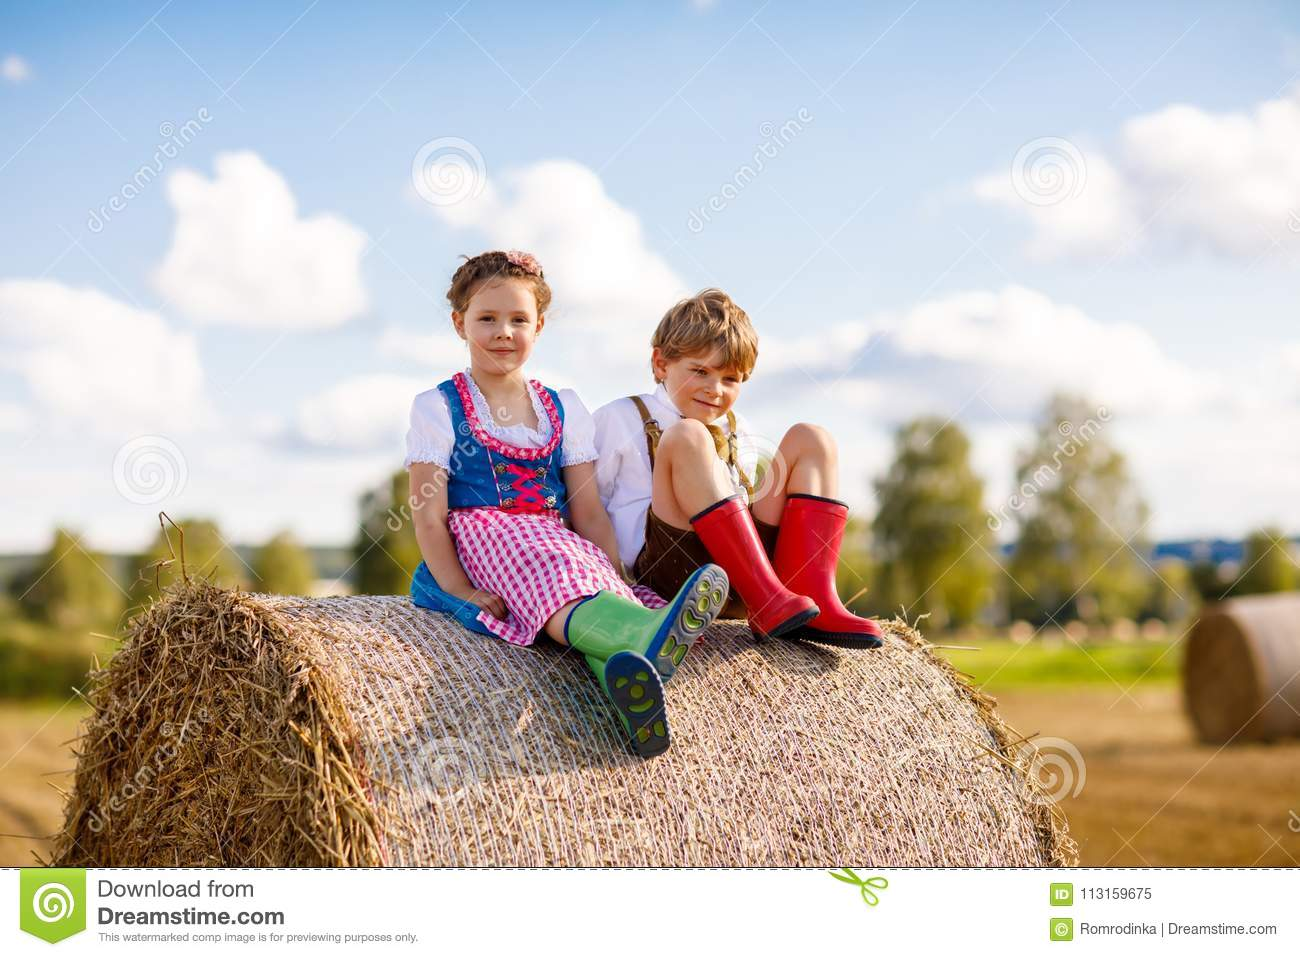 Adorable little kid boy and girl in traditional Bavarian costumes in wheat field on hay stack